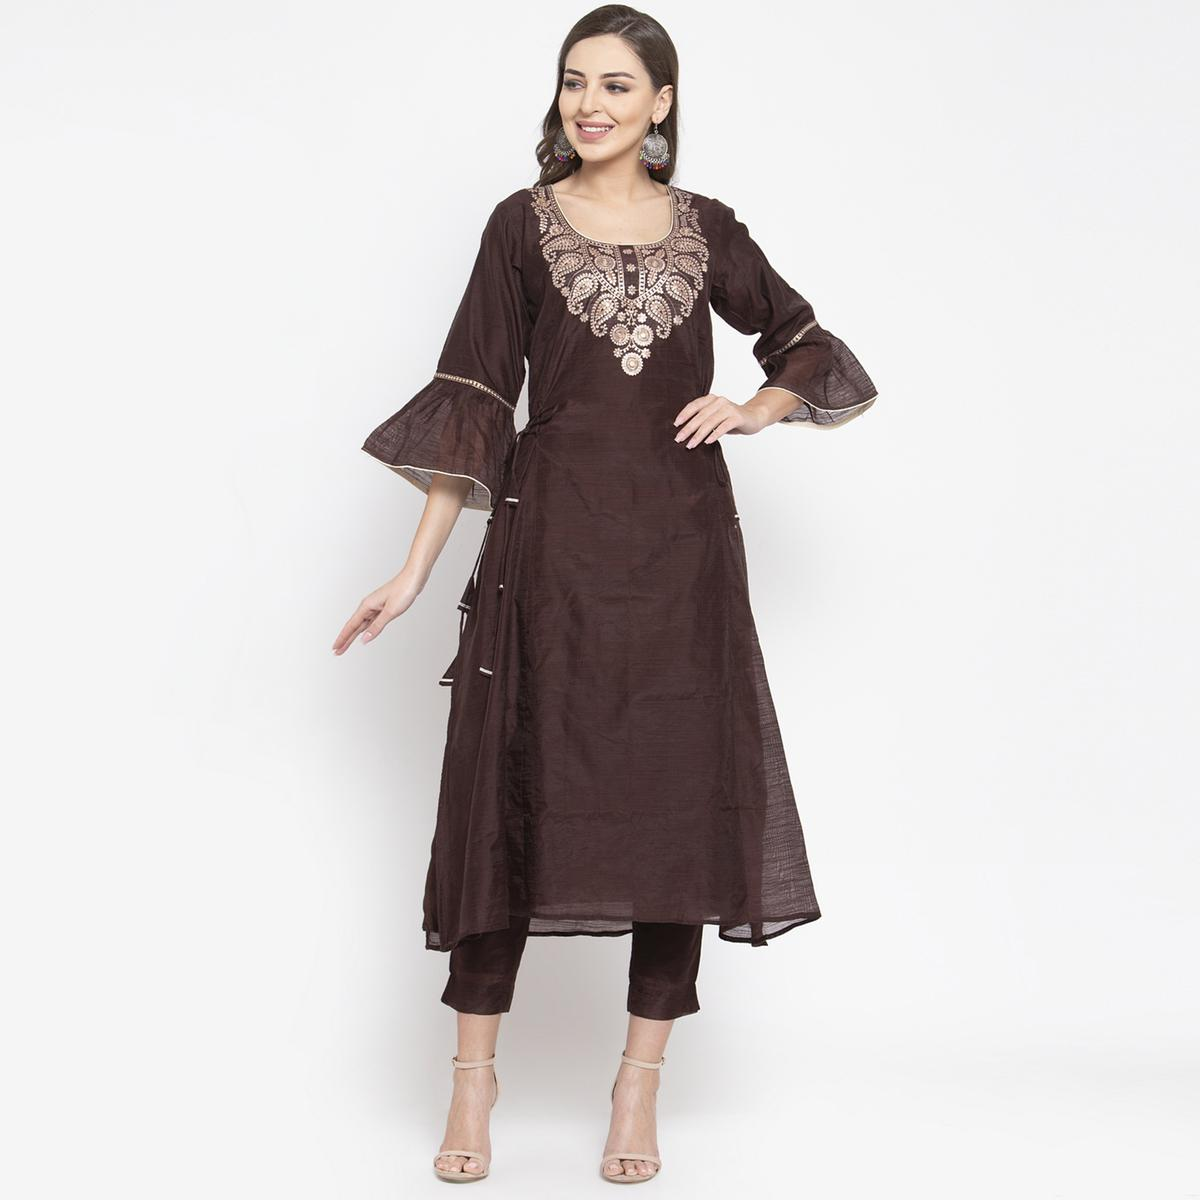 Exotic Dark Brown Colored Party Wear Embroidered Calf Length A-Line Cotton-Chanderi Silk Kurti-Pant Set